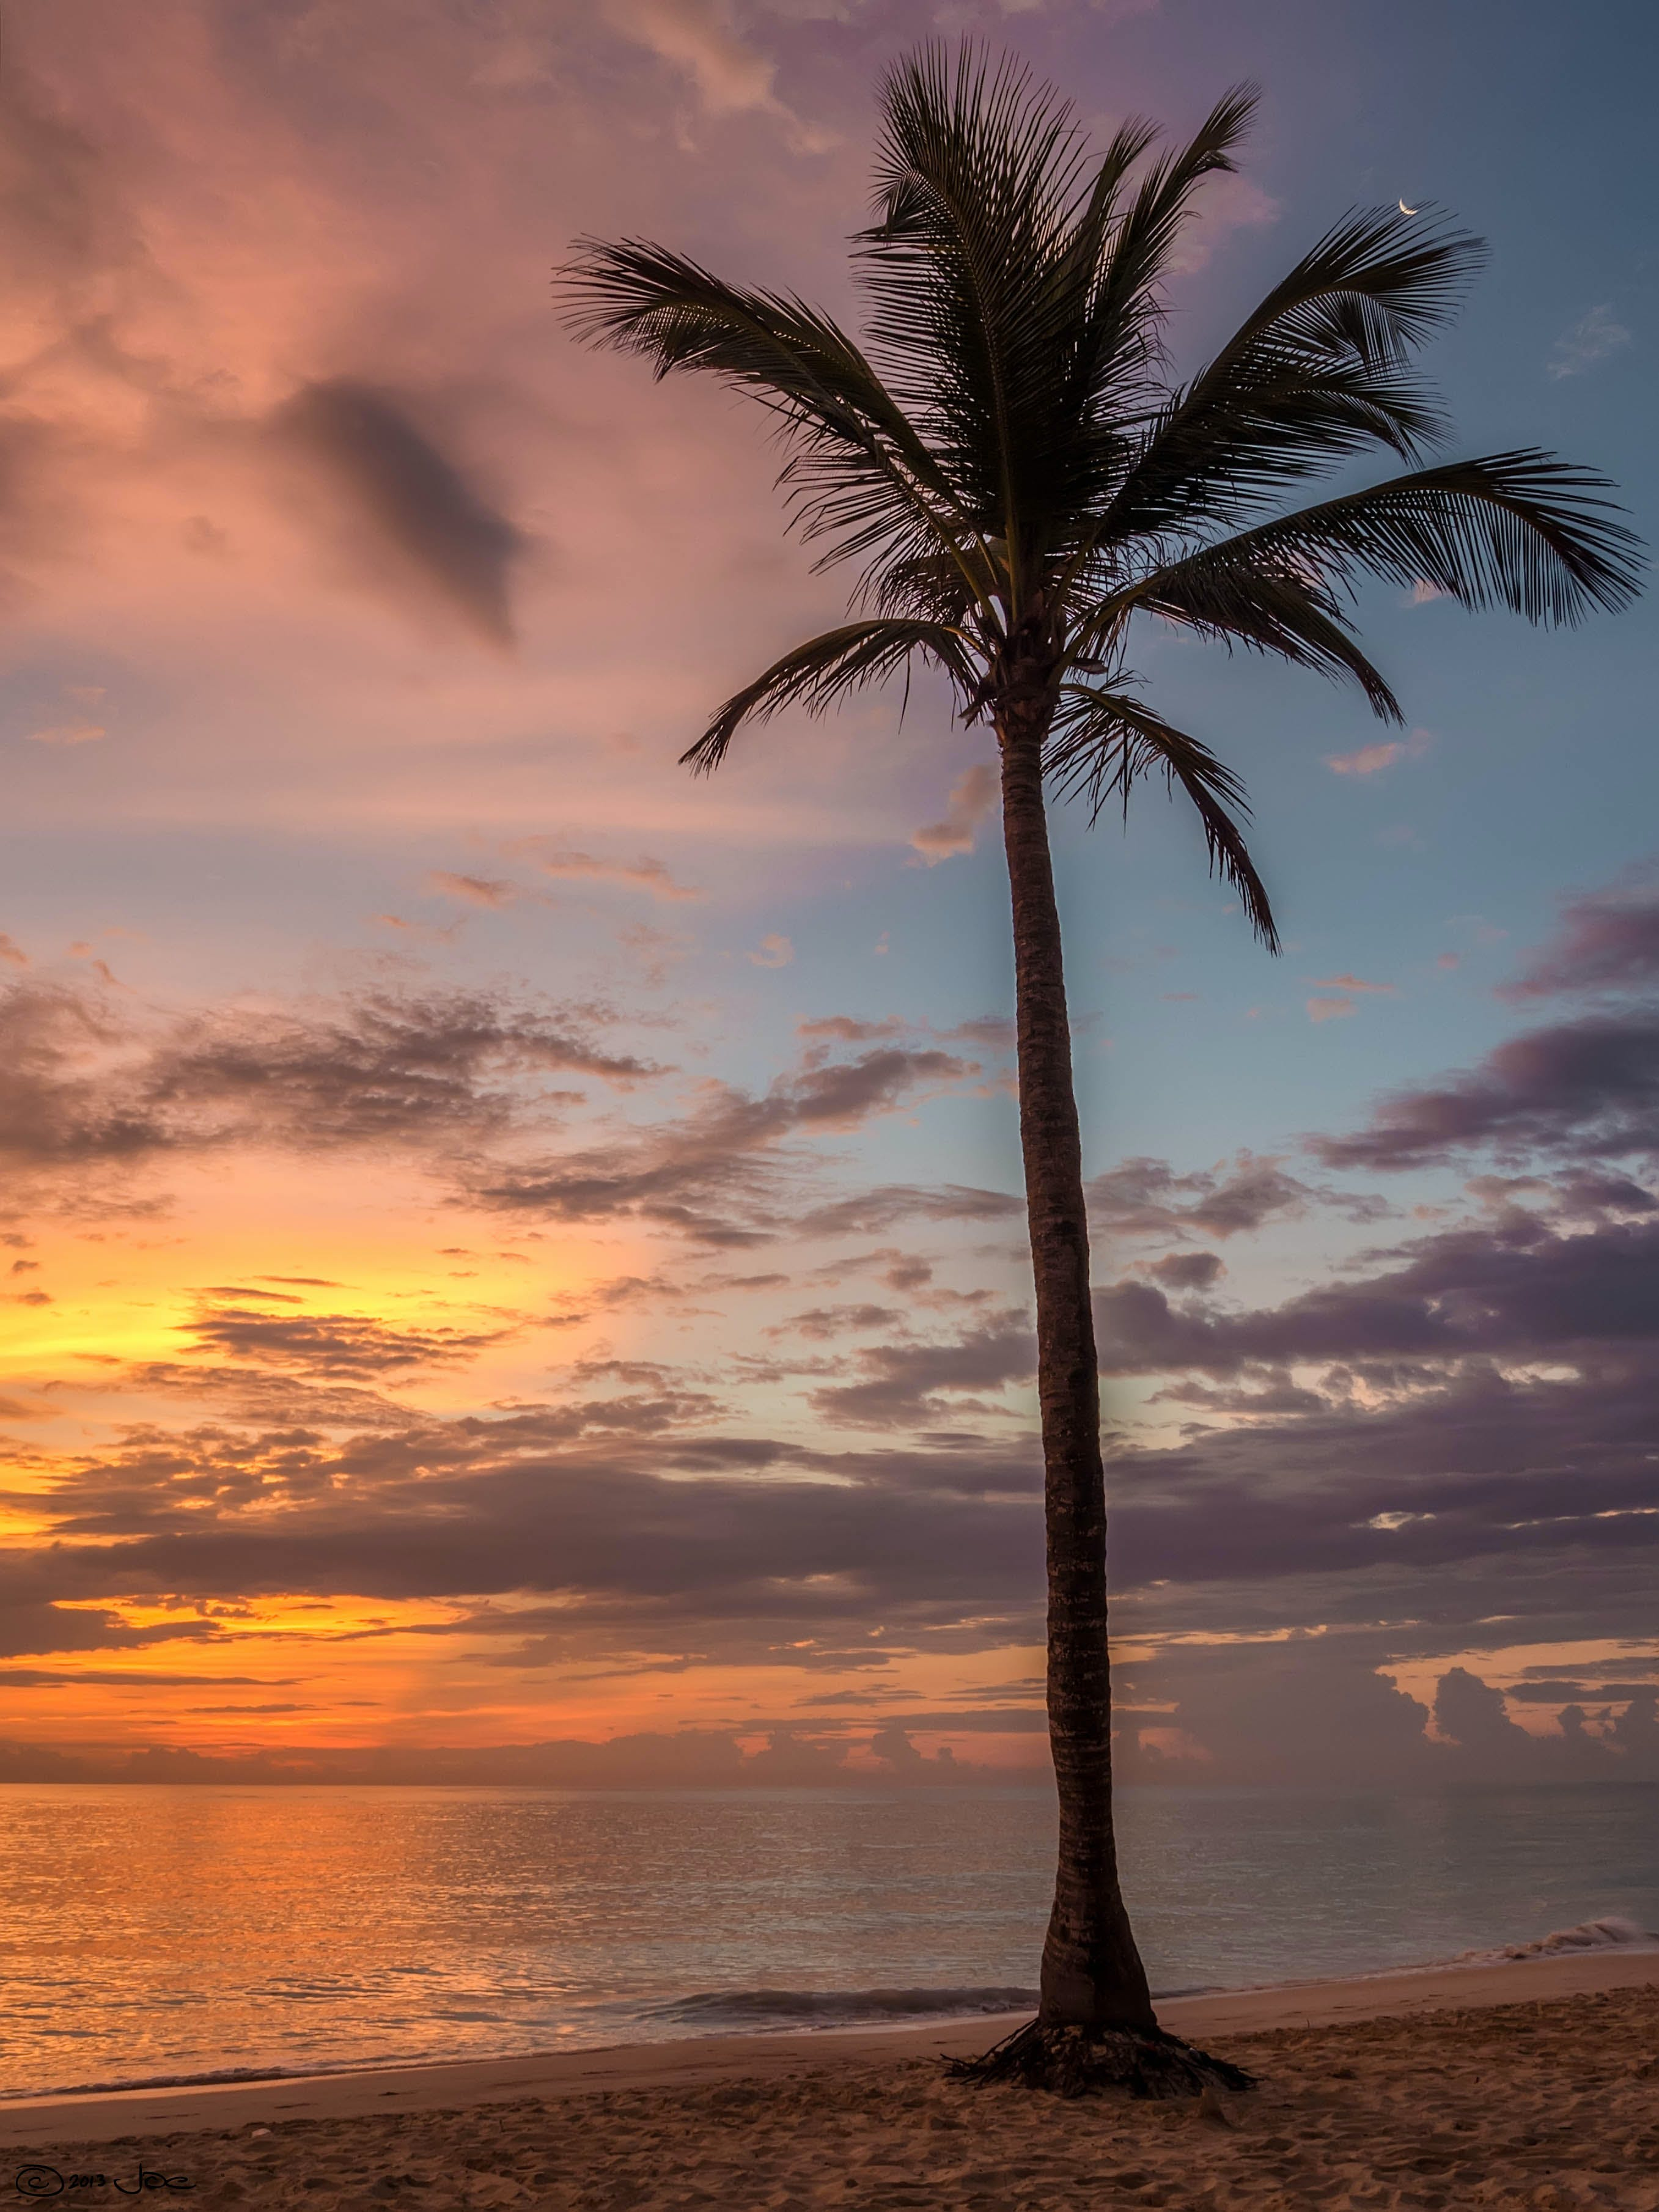 Palm Tree Beside the Sea Shore during Sunset